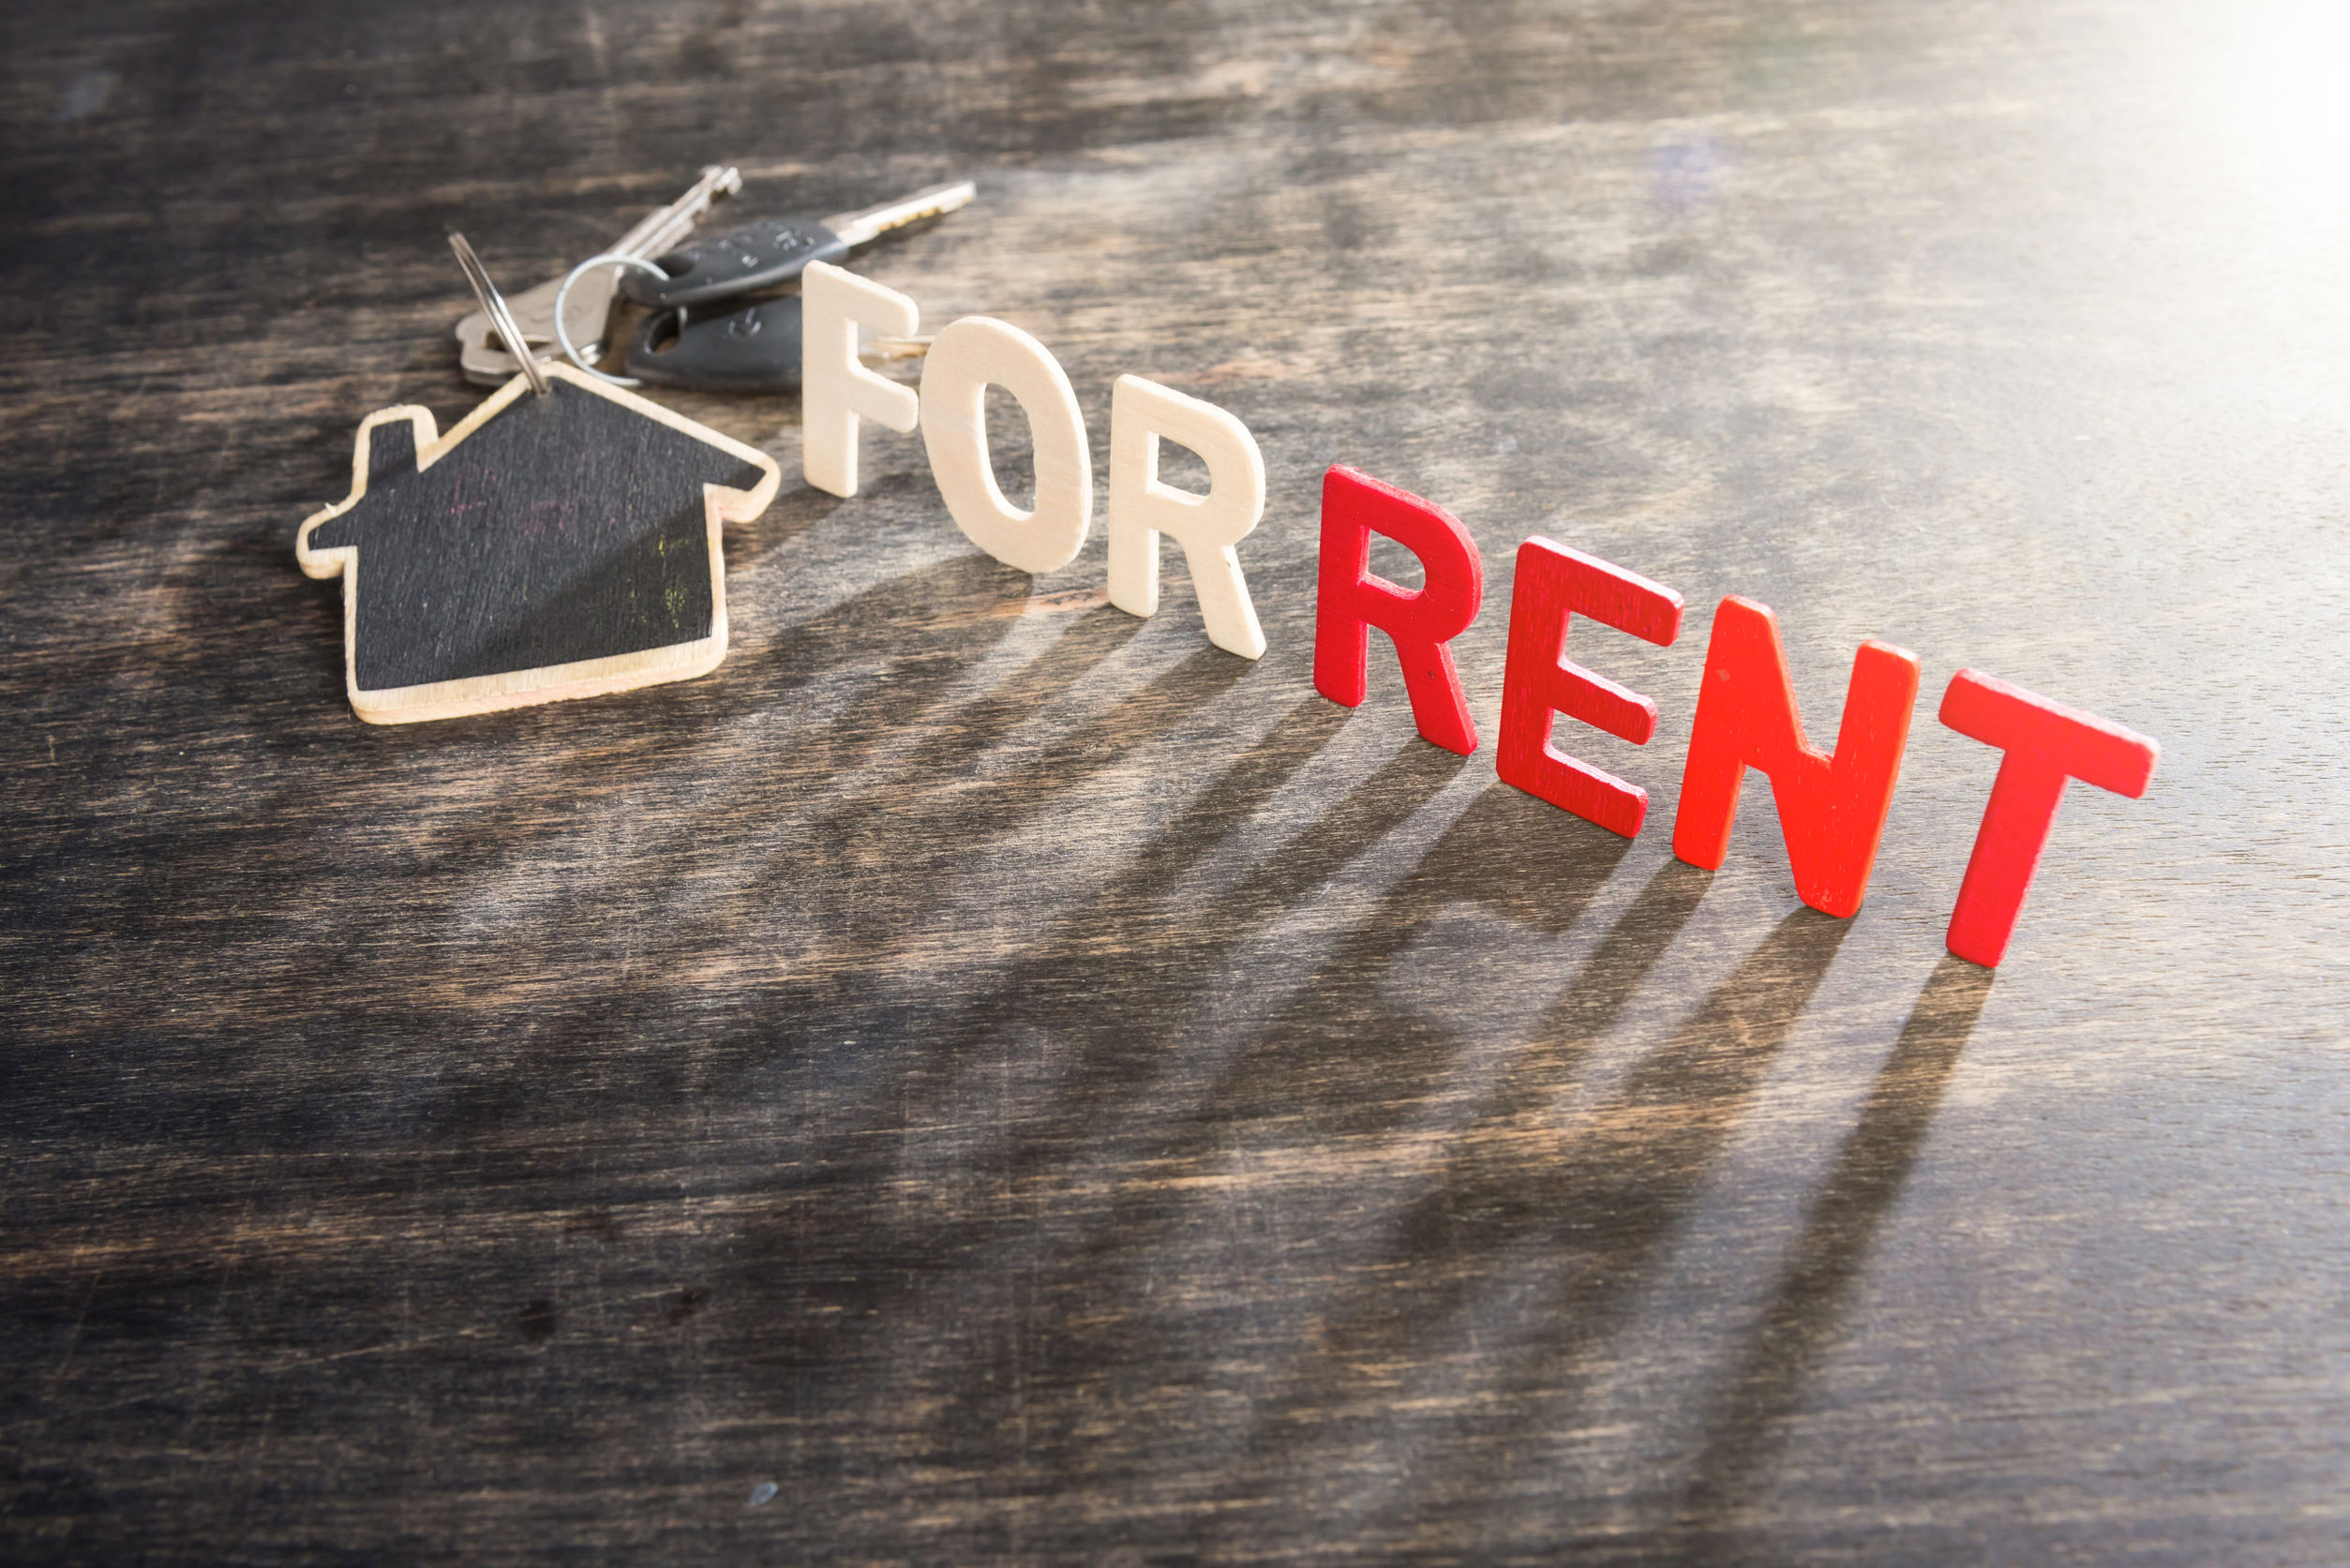 Rental market activity shows signs of recovery